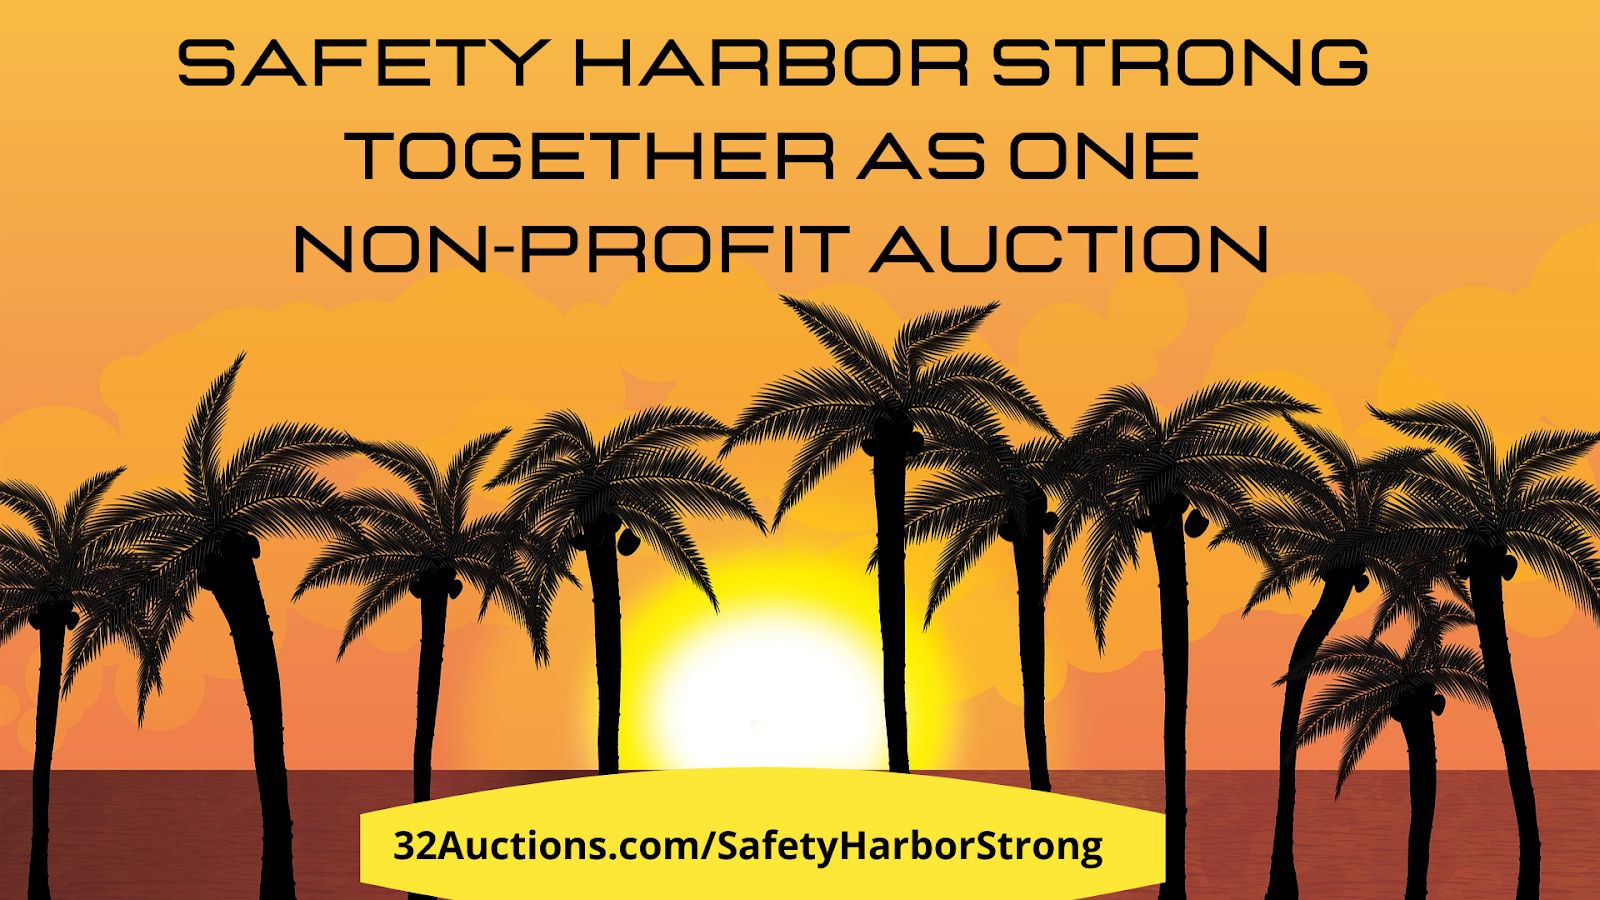 Online auction to benefit Safety Harbor non-profit organizations